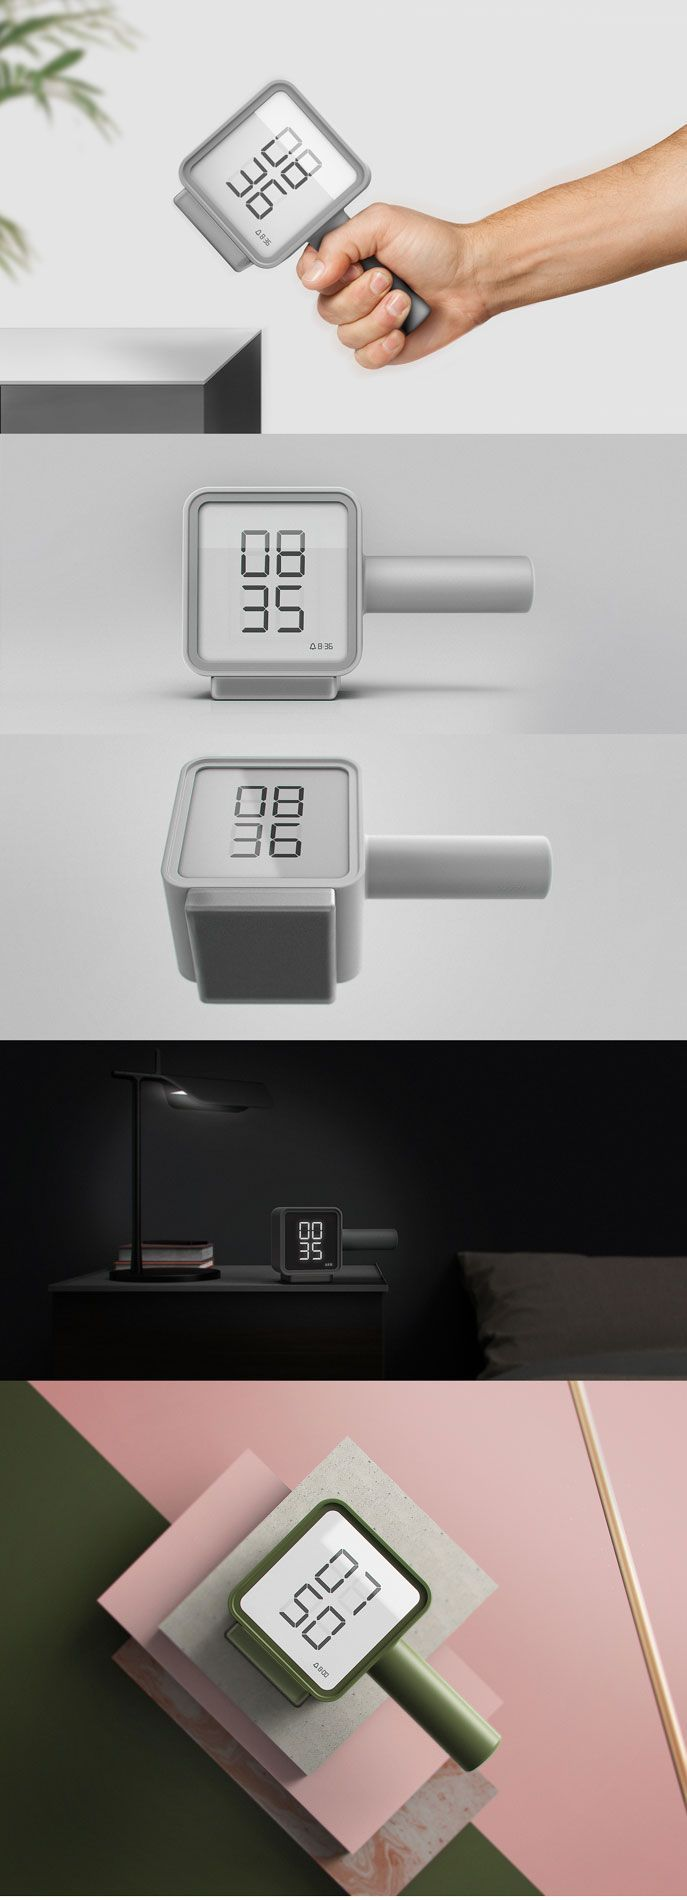 "<div class=""at-above-post addthis_tool"" data-url=""https://www.design-inspiration.net/inspiration/jorge-ros-lexon-hammer-alarm-clock/""></div>Hammer Alarm Clock. Nowadays, most of the domestic gadgets like the alarm clock, have been replaced by new technology. When we wake up, we usually feel irritated due to the lack of energy and excitement, but there are some actions that can motivate us and set the tone of our day.The i..."